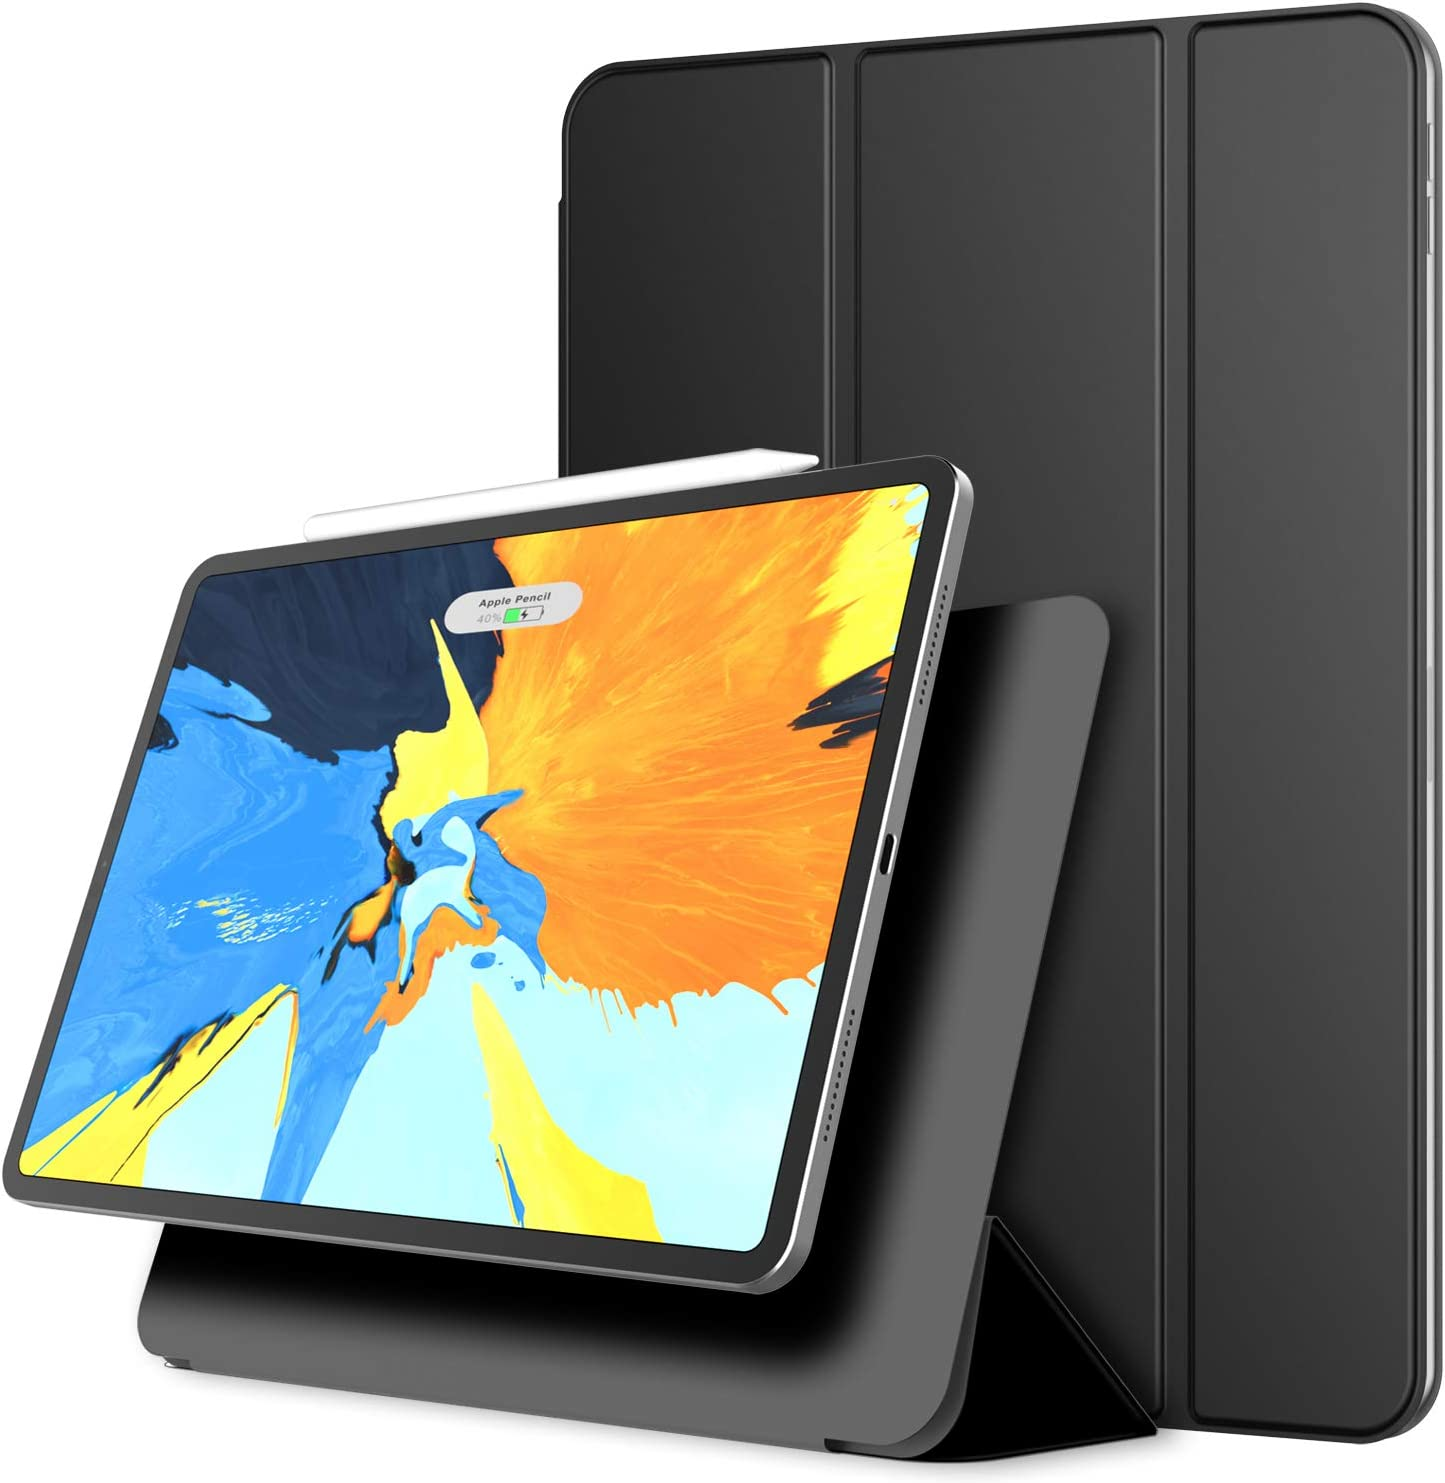 JETech Magnetic Case for iPad Pro 11 Inch 2018 Model (NOT for 2020 Model), Support Pencil 2nd Generation Charging, Magnetic Attachment, Cover with Auto Wake/Sleep